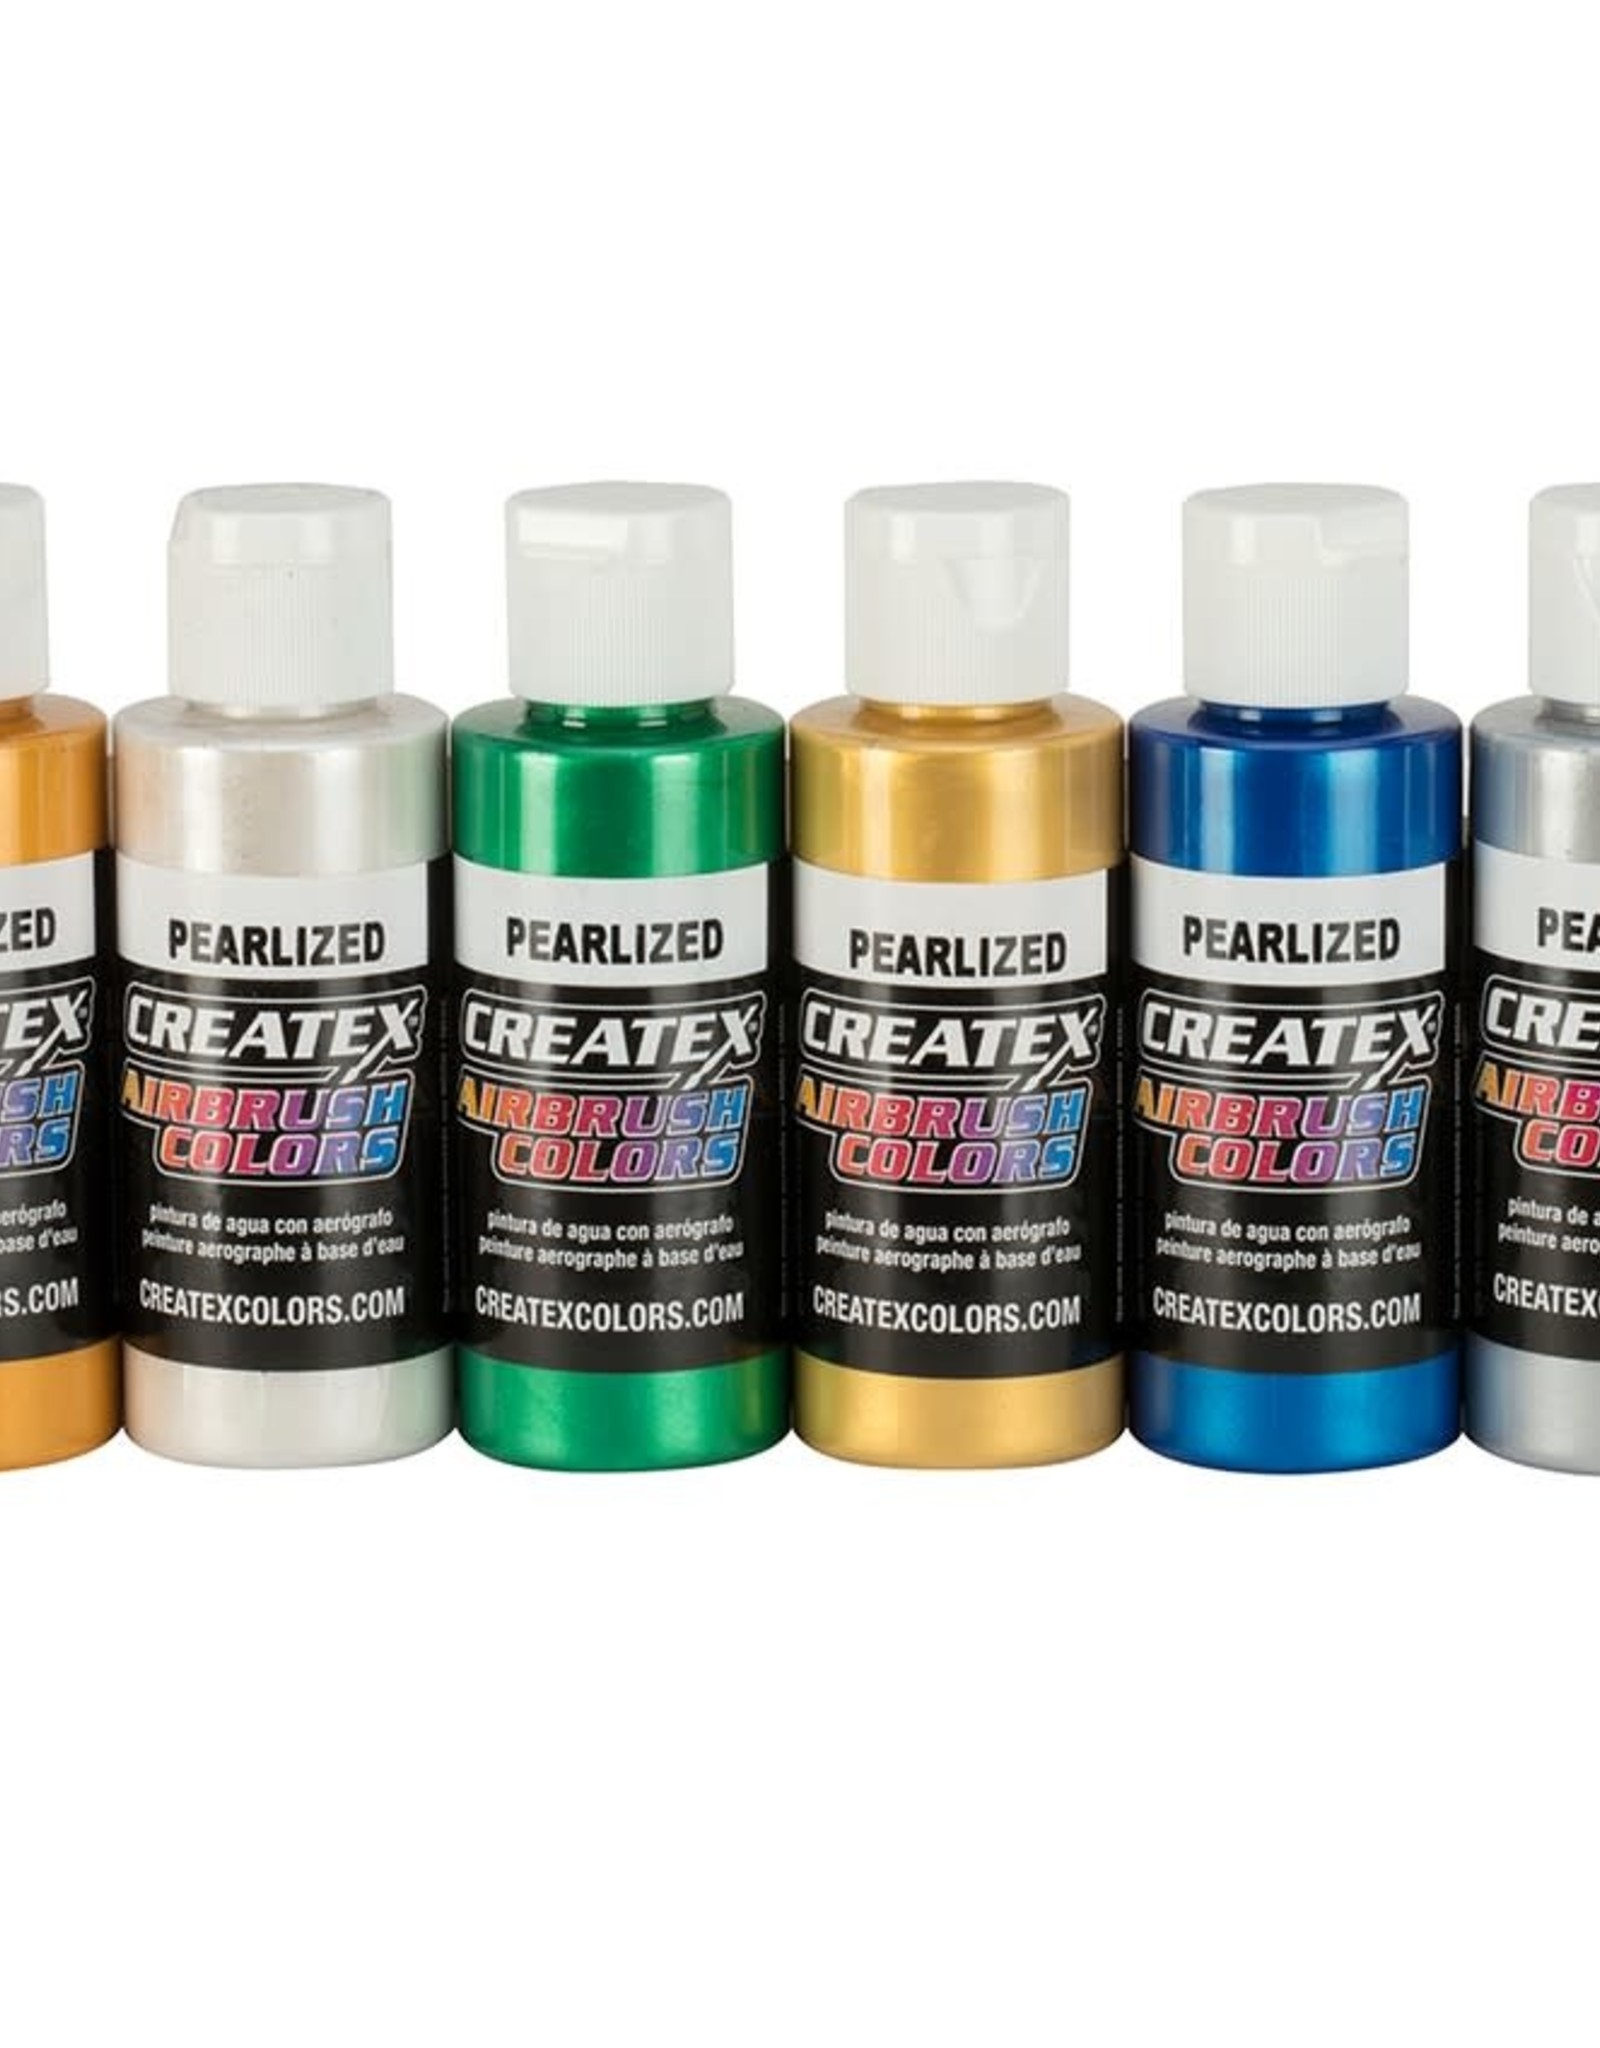 CREATEX COLORS Createx 2 oz AB Pearl Set